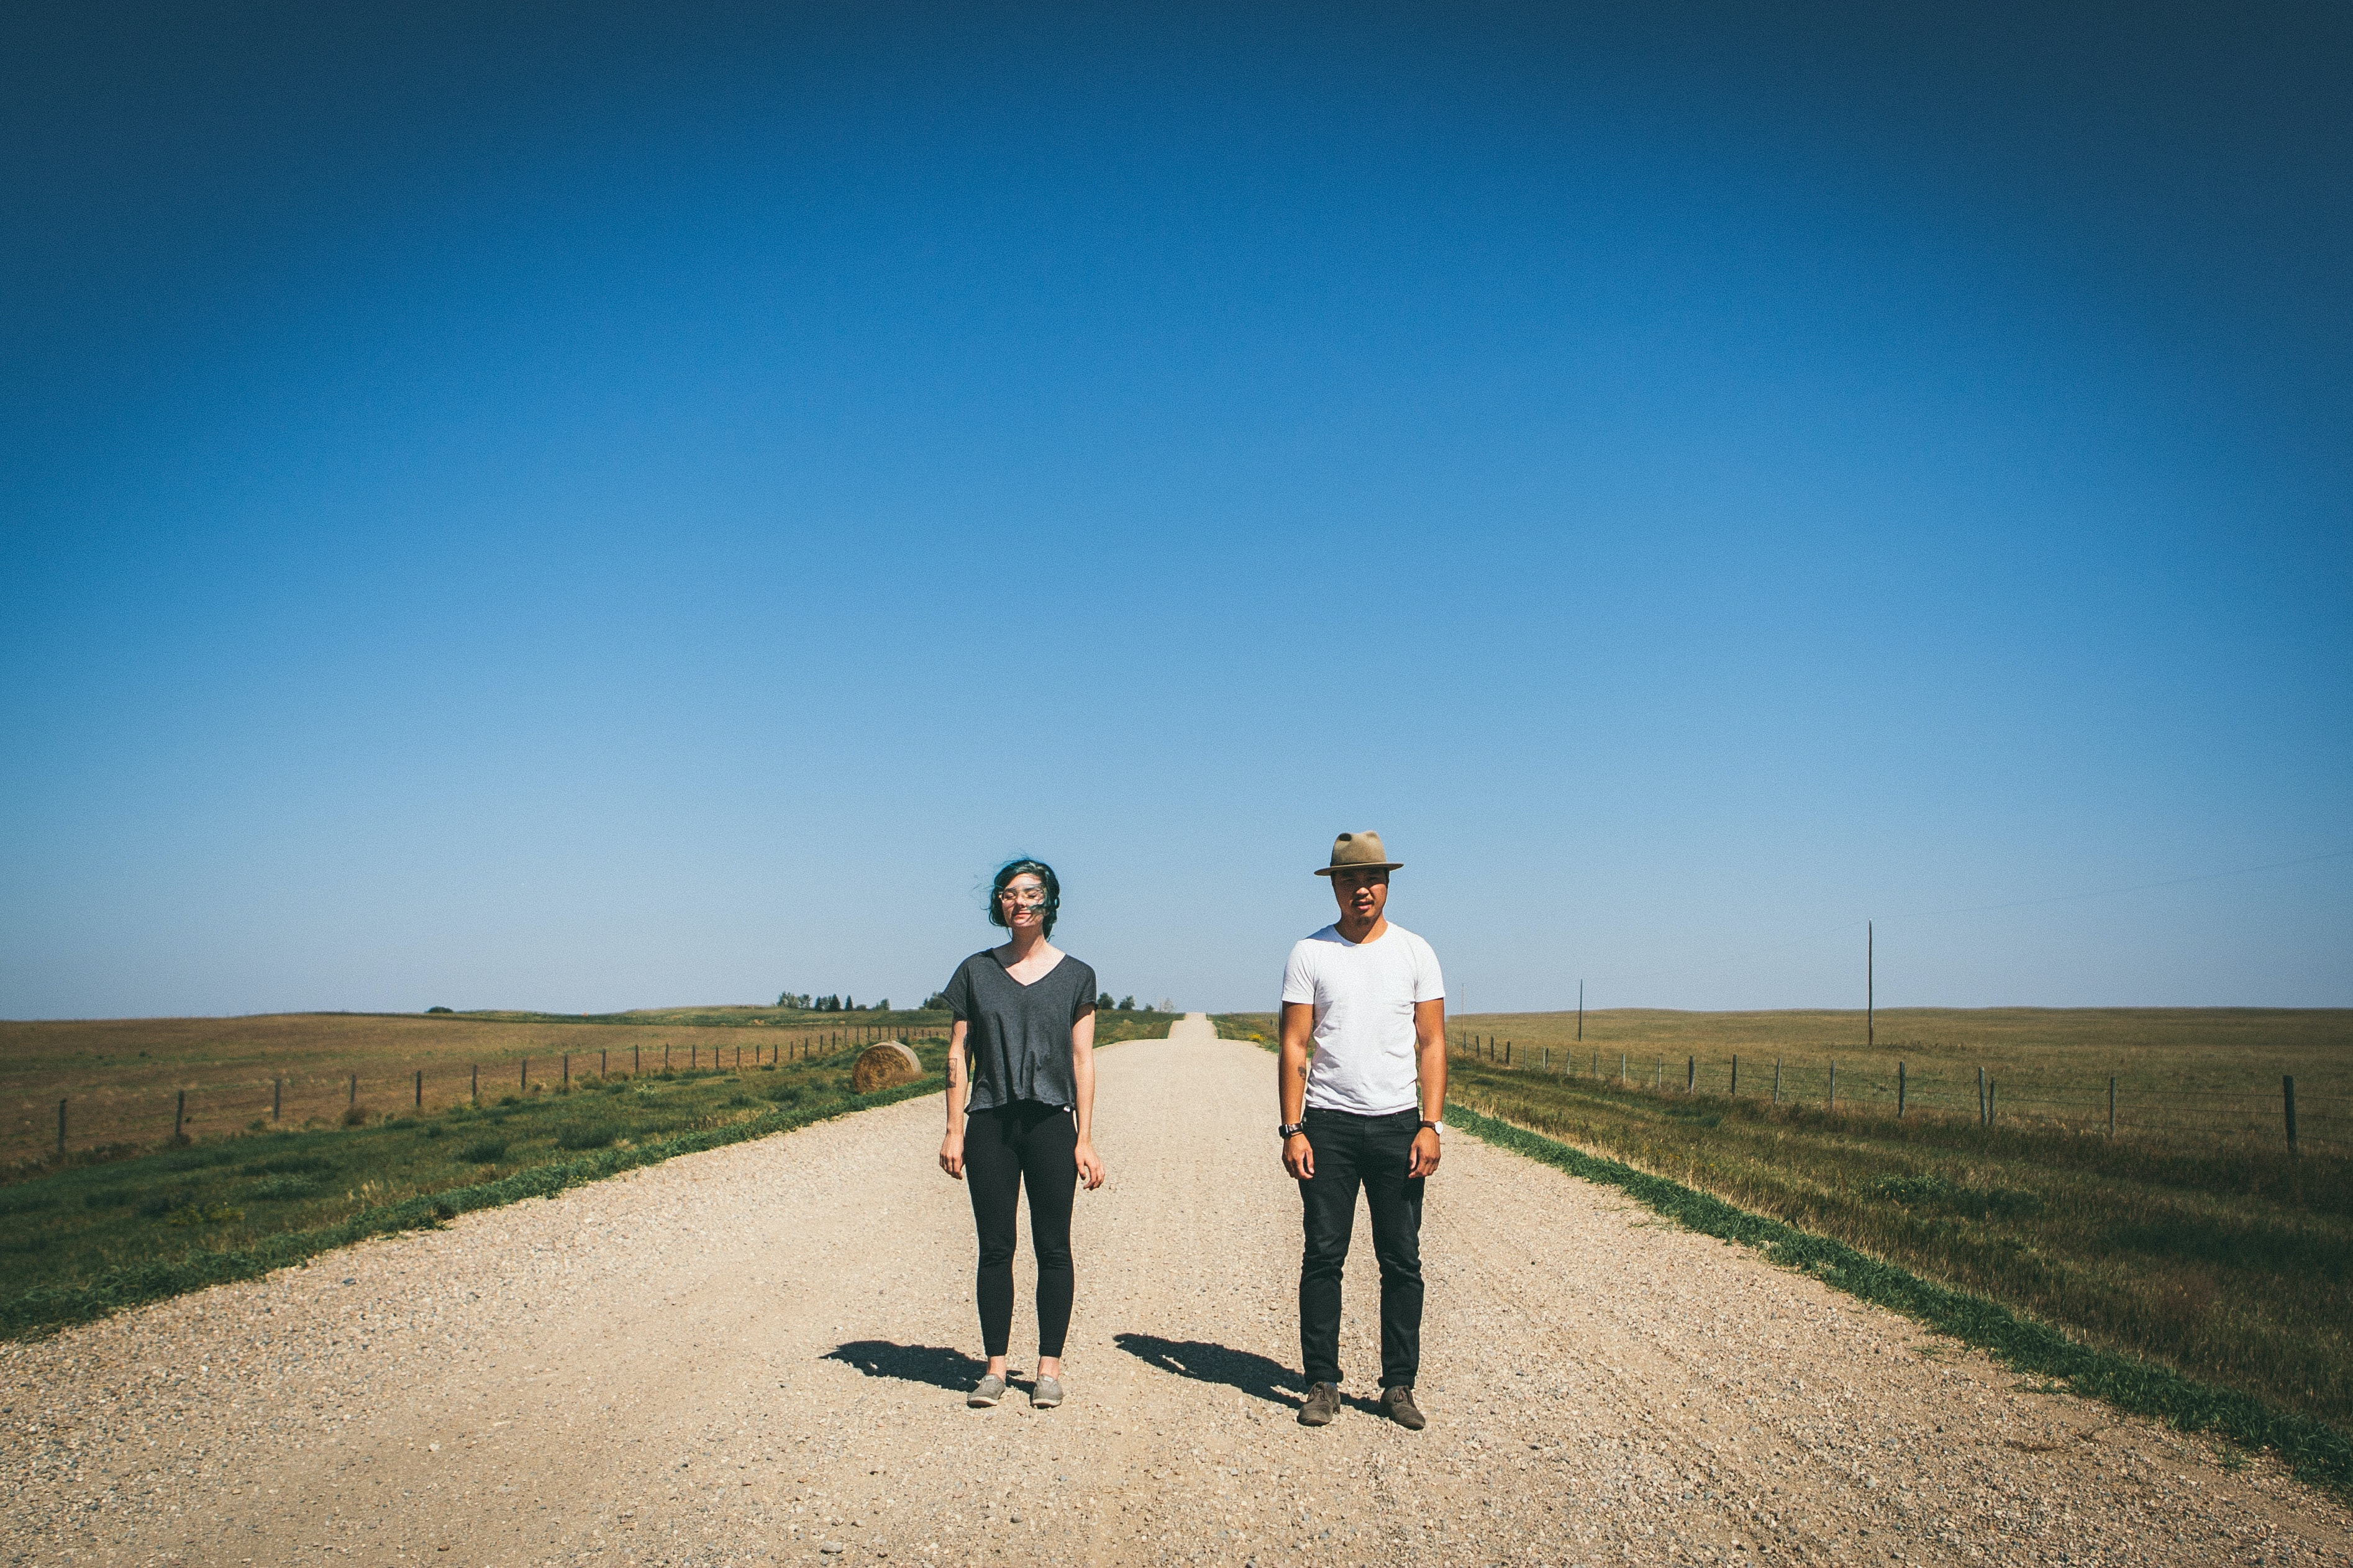 man and woman standing on road between grass fields during daytime